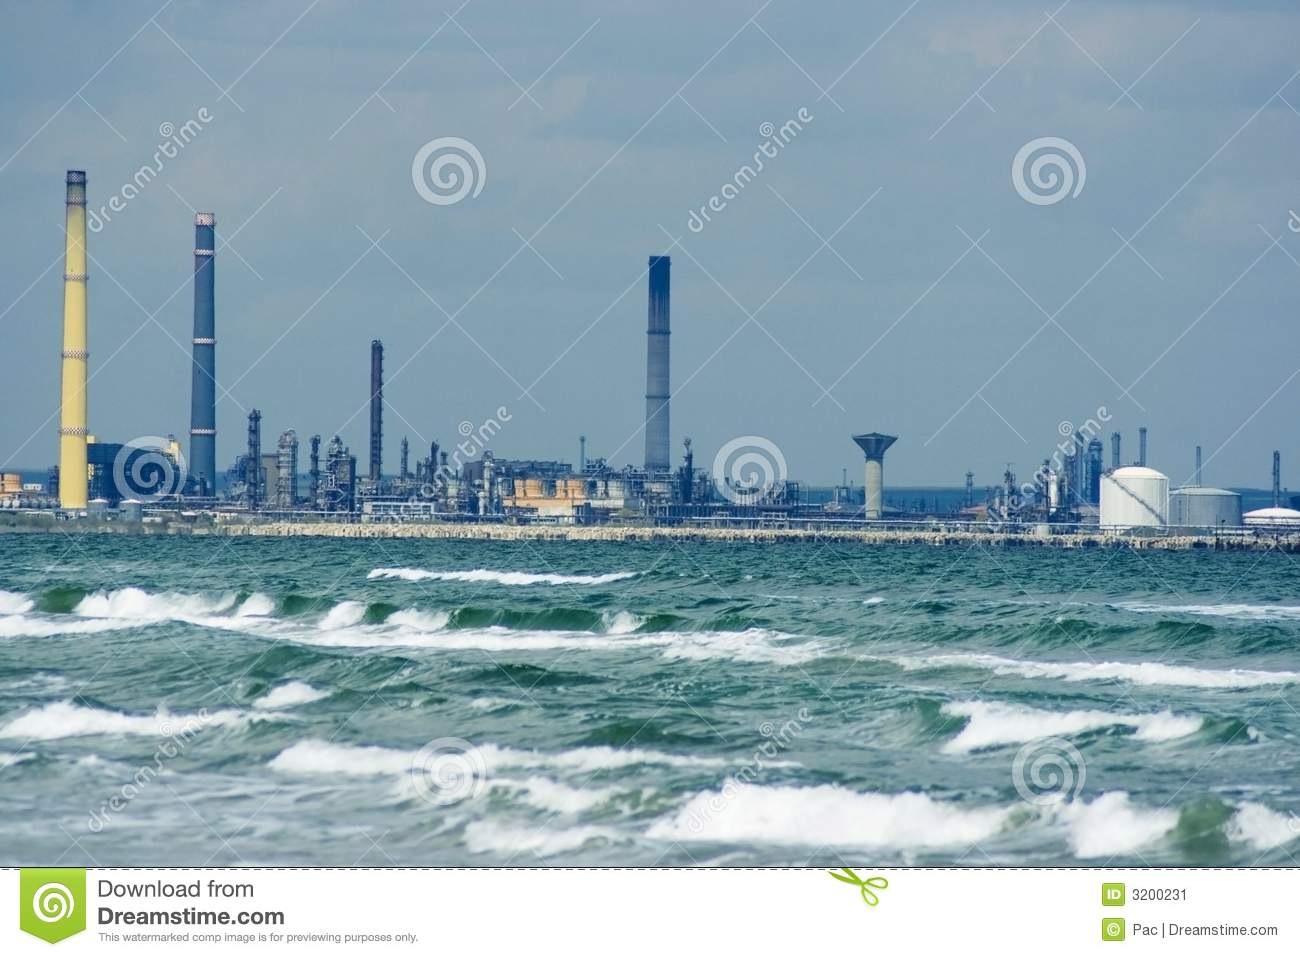 Oil Refinery At Sea Stock Image - Image: 3200231